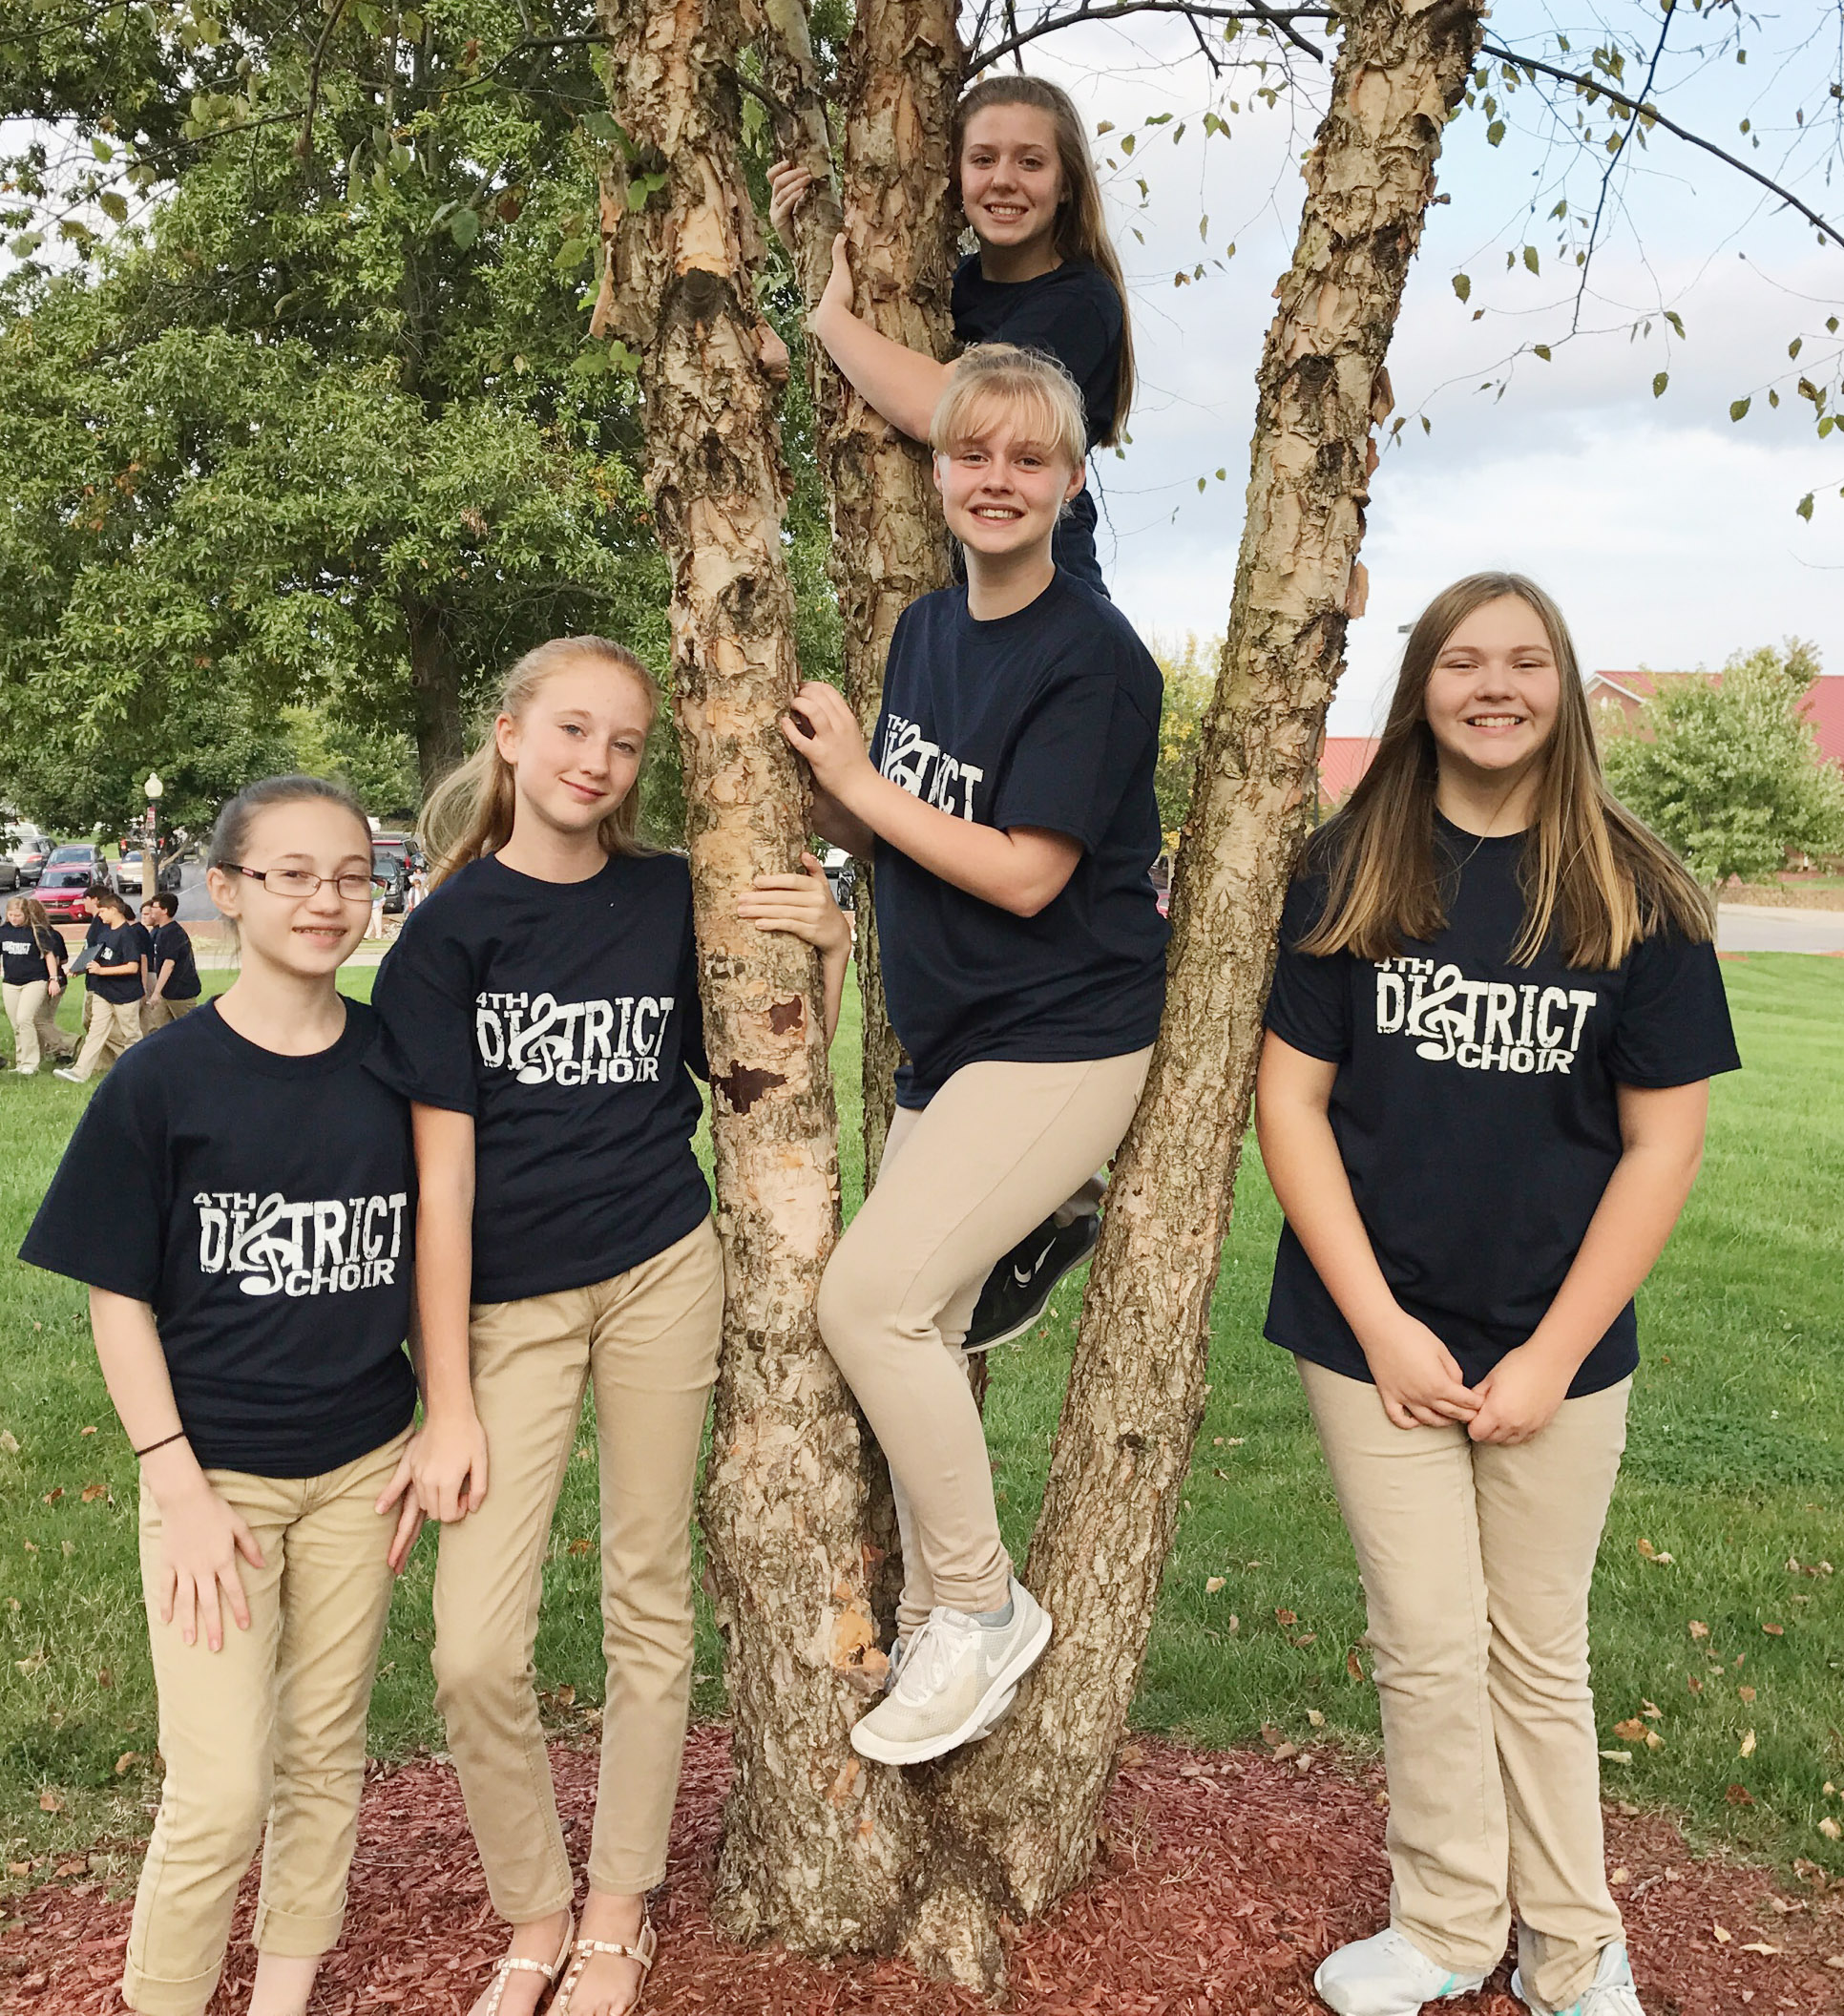 CMS students chosen to participate in the junior high choir include, from left, eighth-graders Cailet Clark, Hayley Wethington and Gabby Skaggs, seventh-grader Alysa Howard and eighth-grader Isabella Vannice.